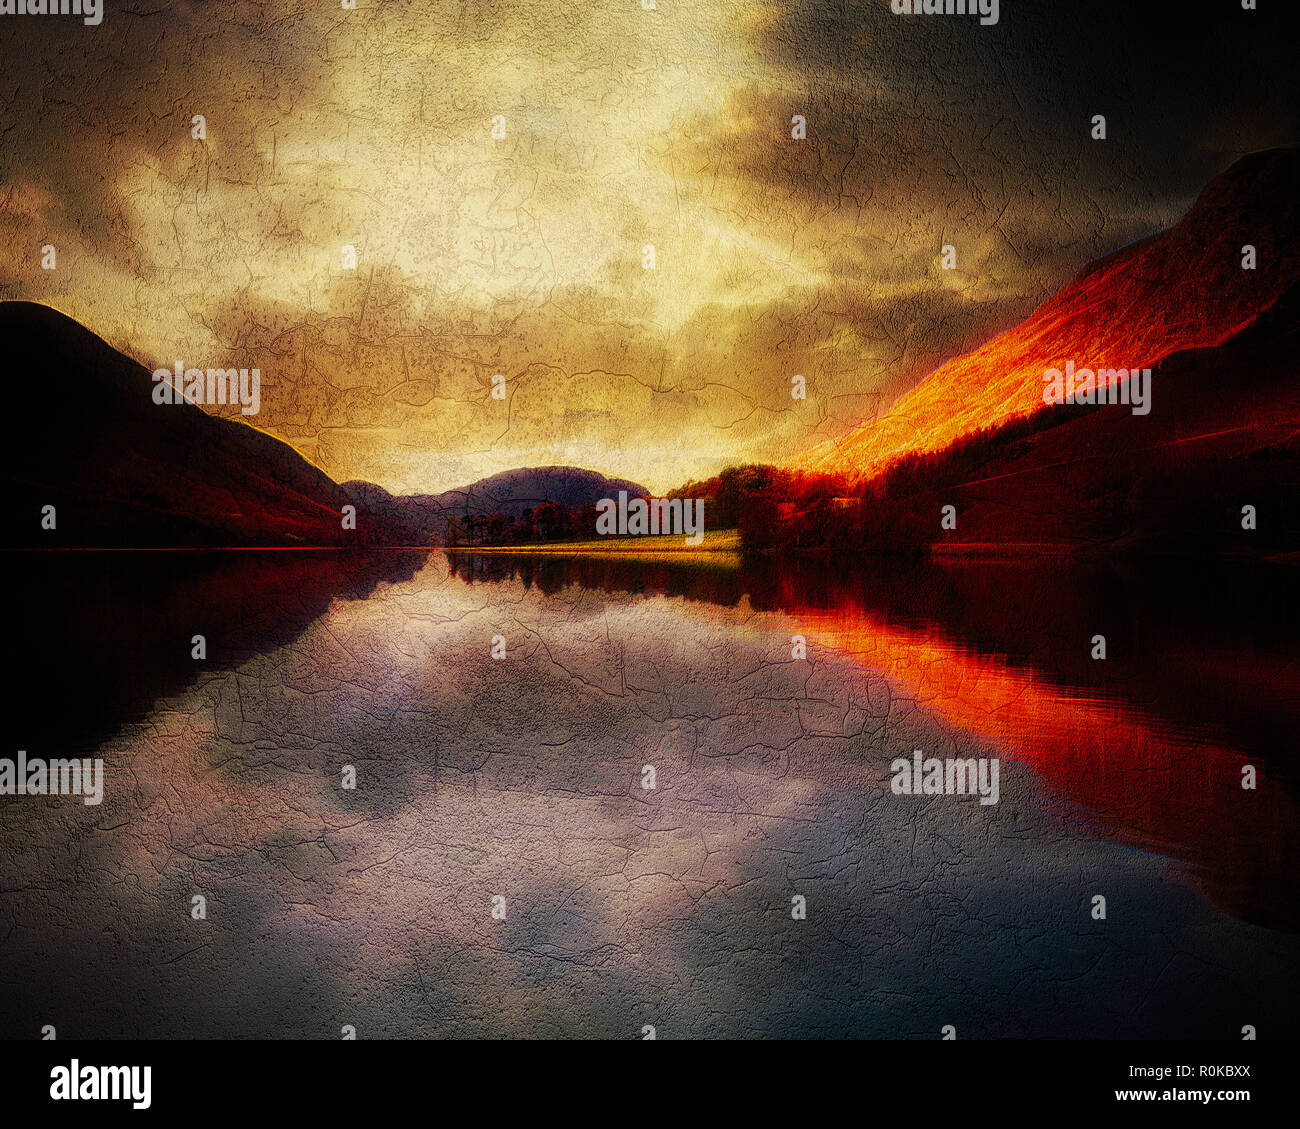 DIGITAL ART: Buttermere in the Lake District National Park Stock Photo